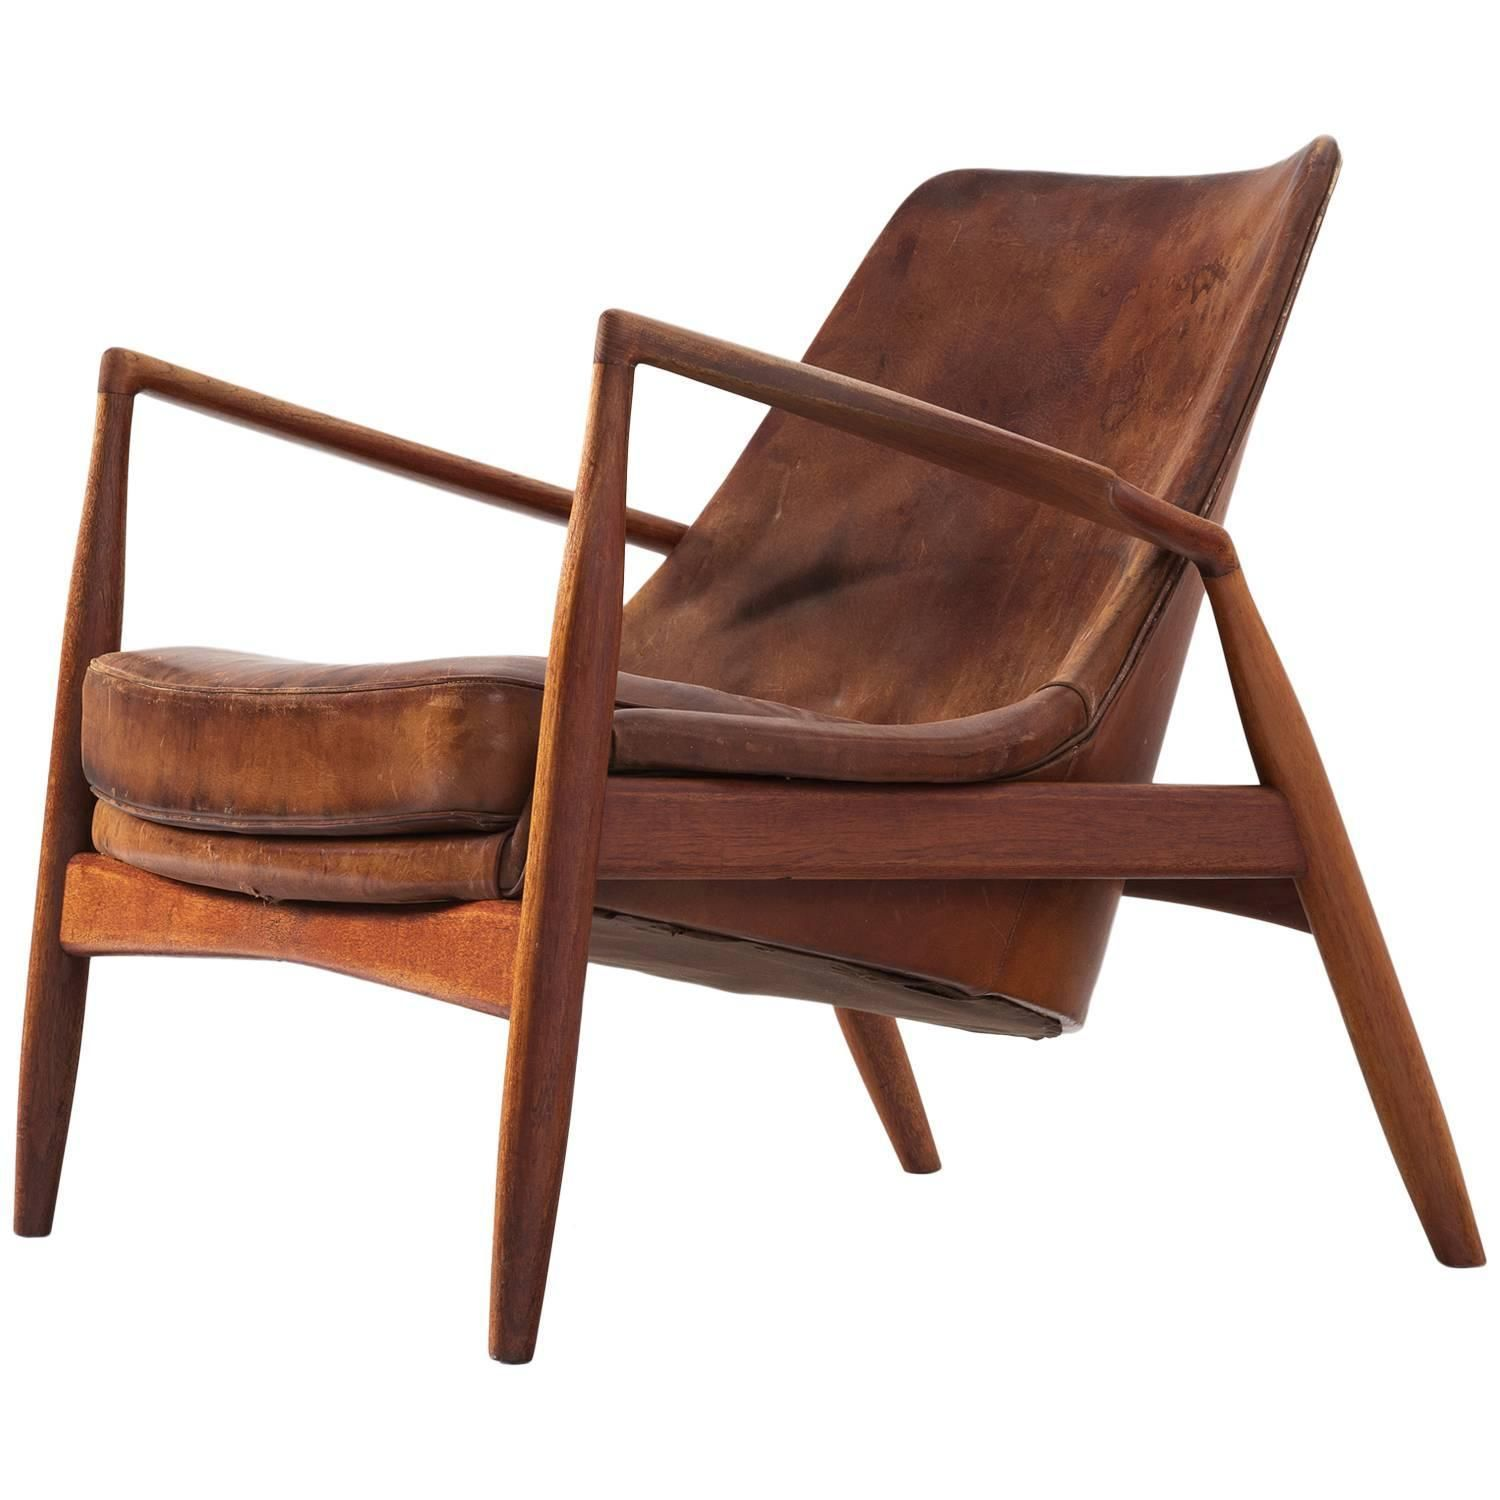 Ib Kofod Larsen U0027Sealu0027 Lounge Chair In Patinated Cognac Leather | From A